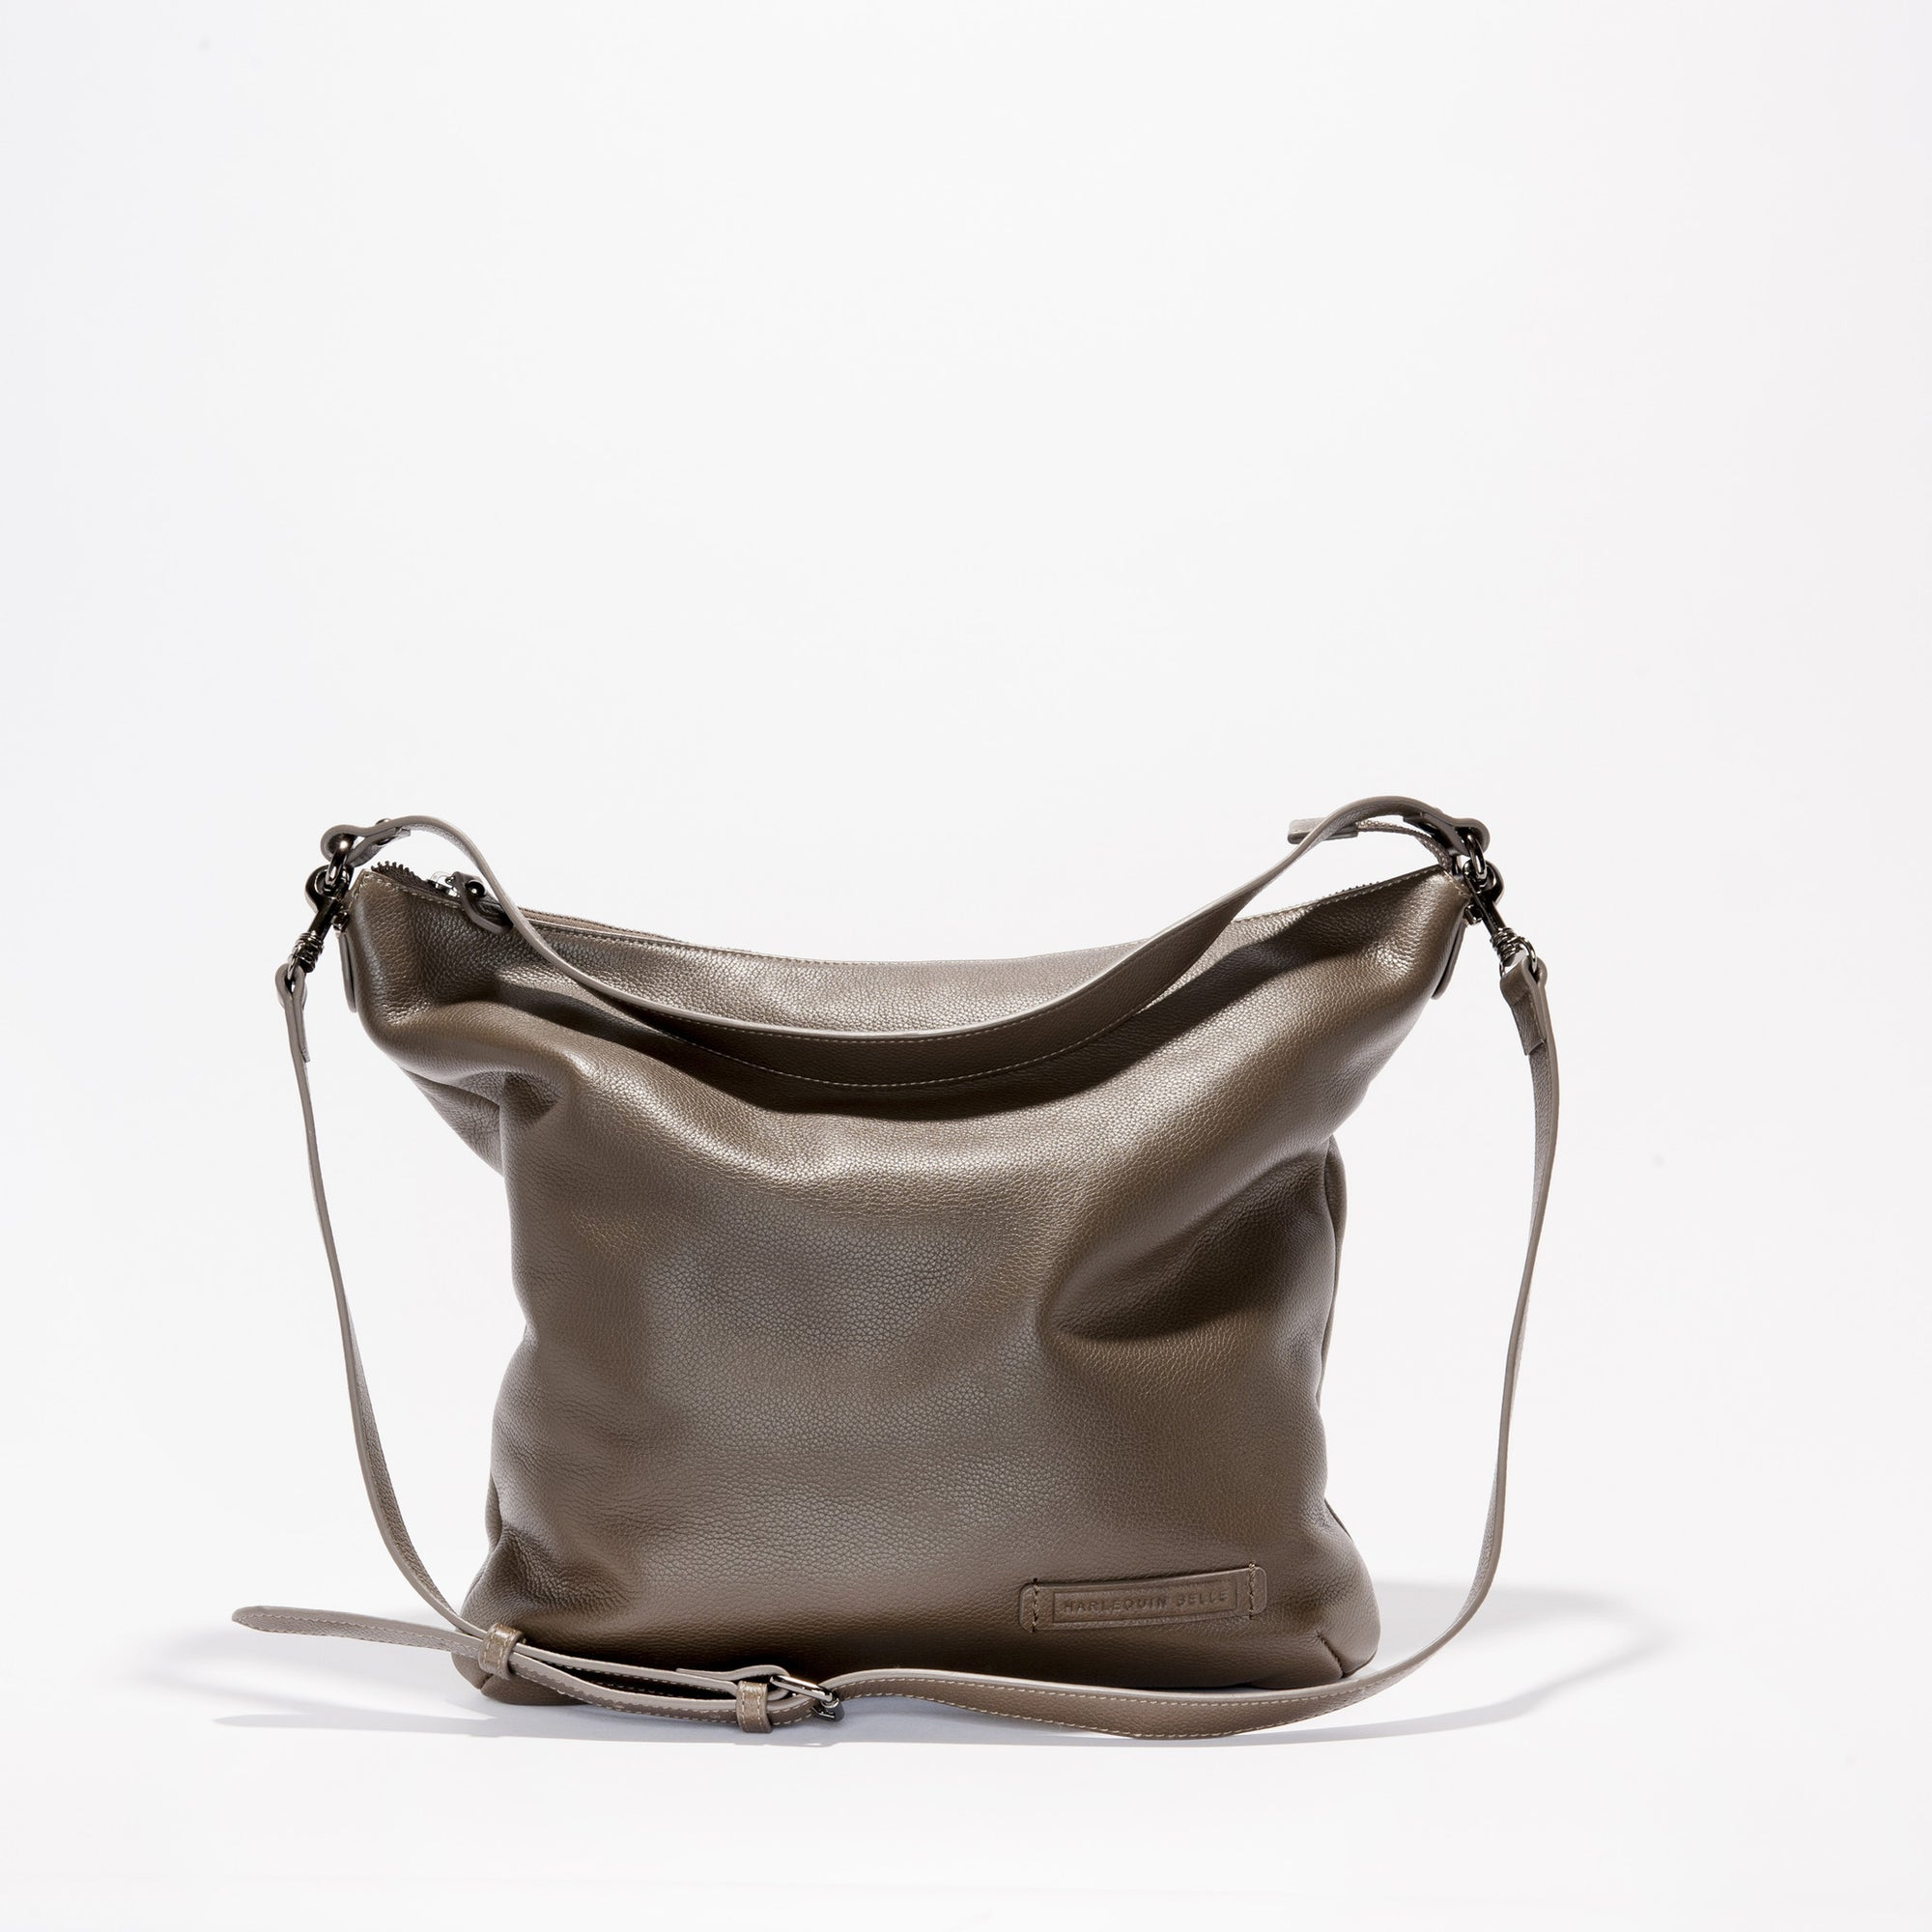 Endless Sunday Bag - Taupe